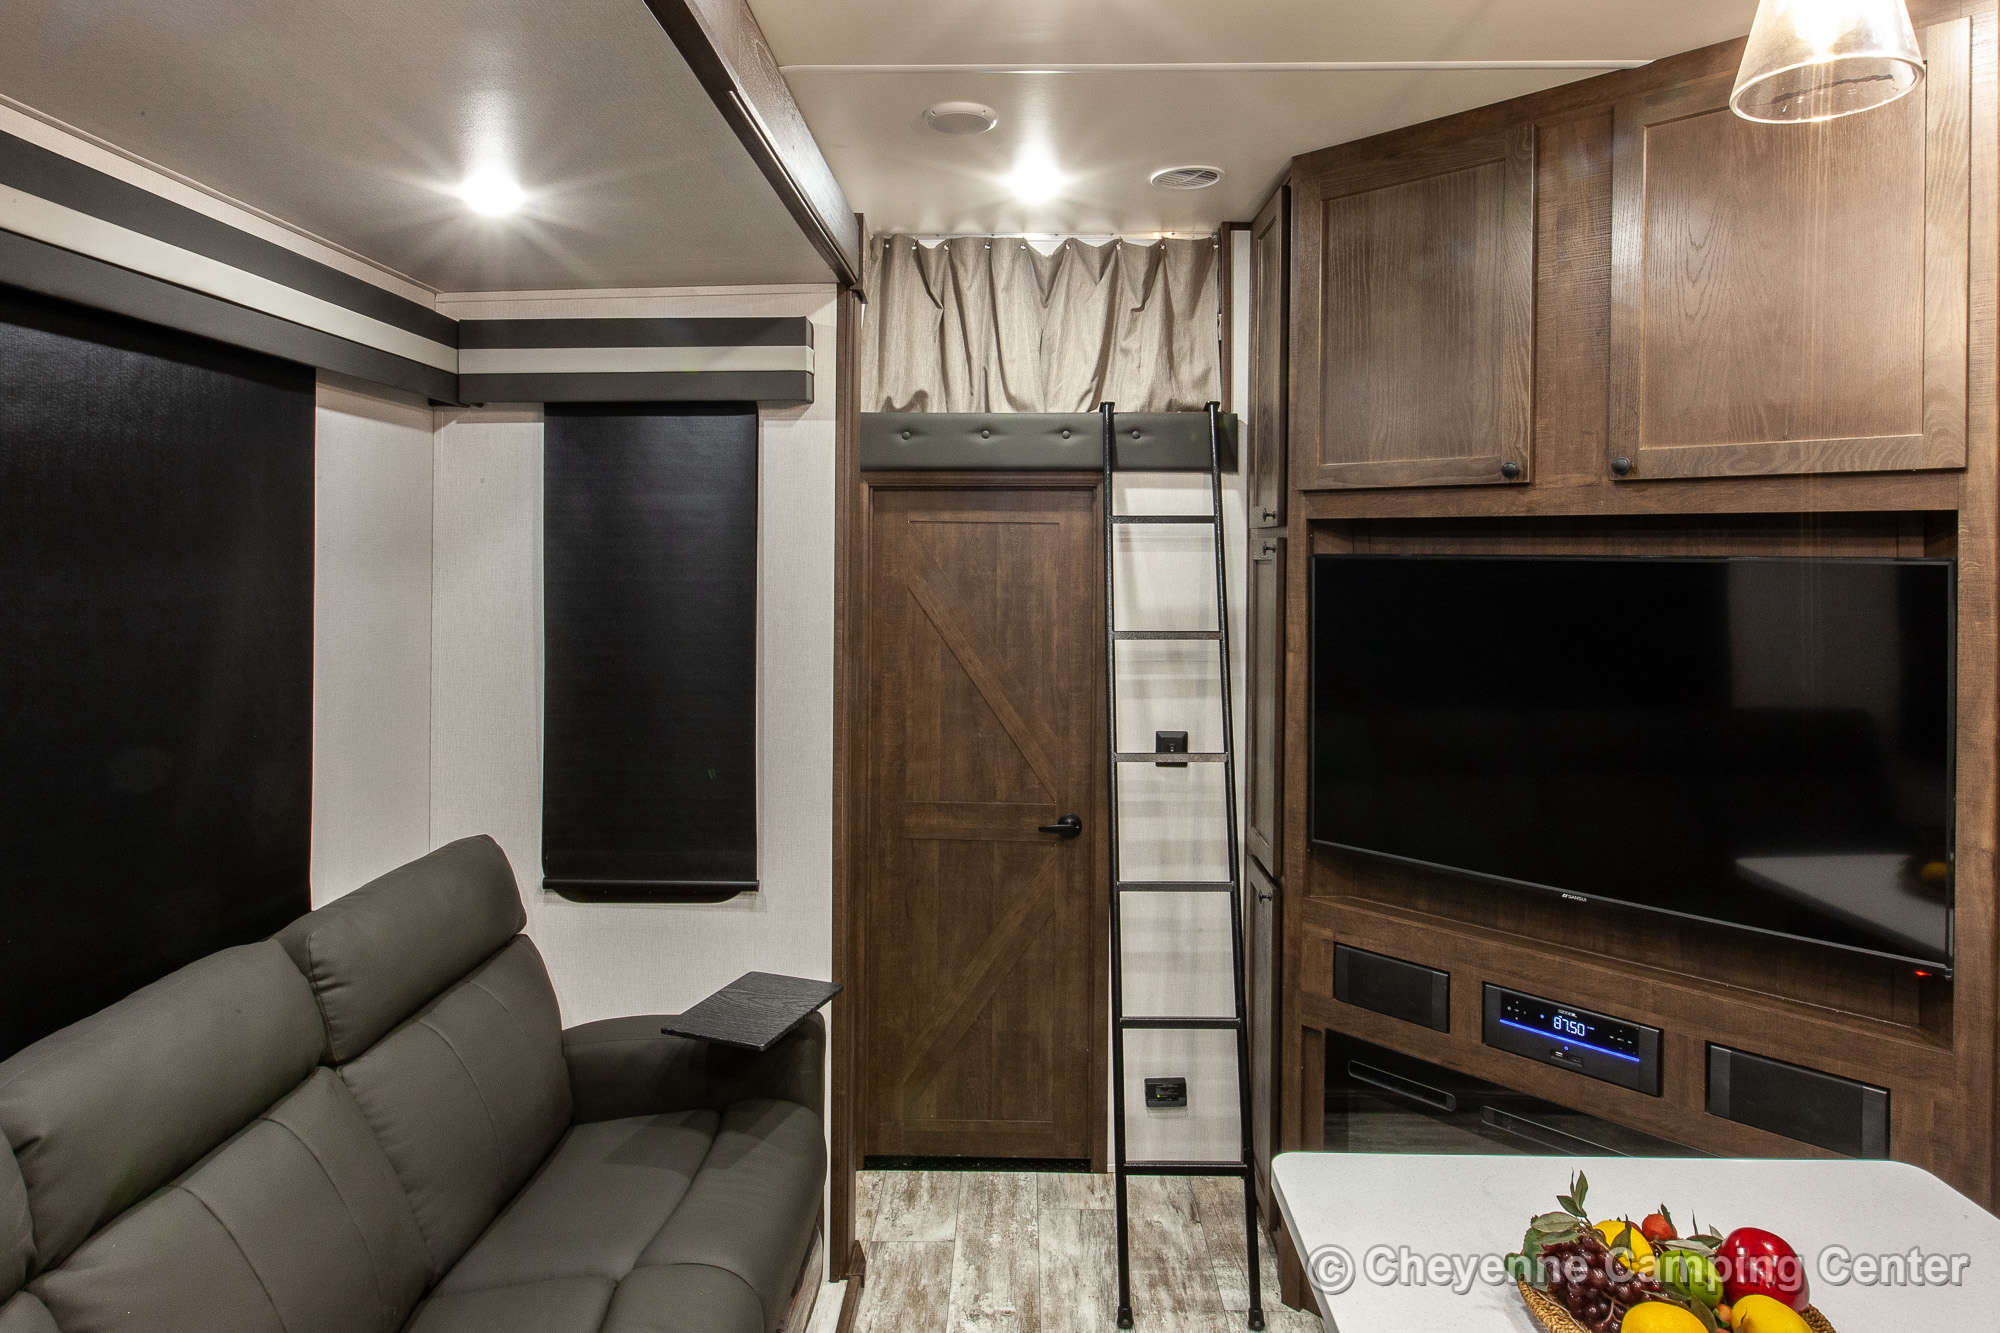 2021 Forest River XLR Nitro 35DK5 Bunkhouse Toy Hauler Fifth Wheel Interior Image